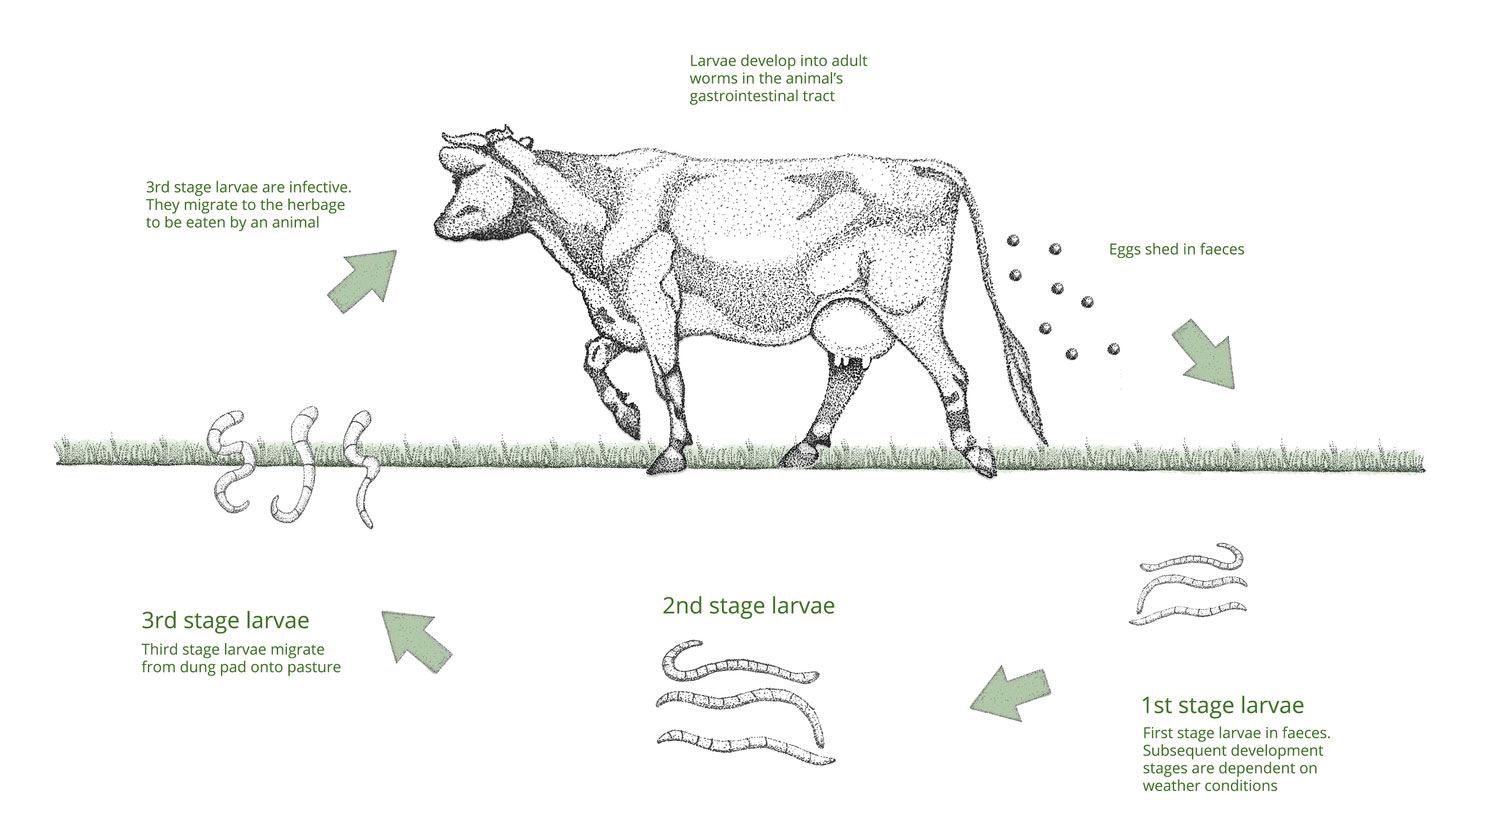 Gastrointestinal Worms in Cattle